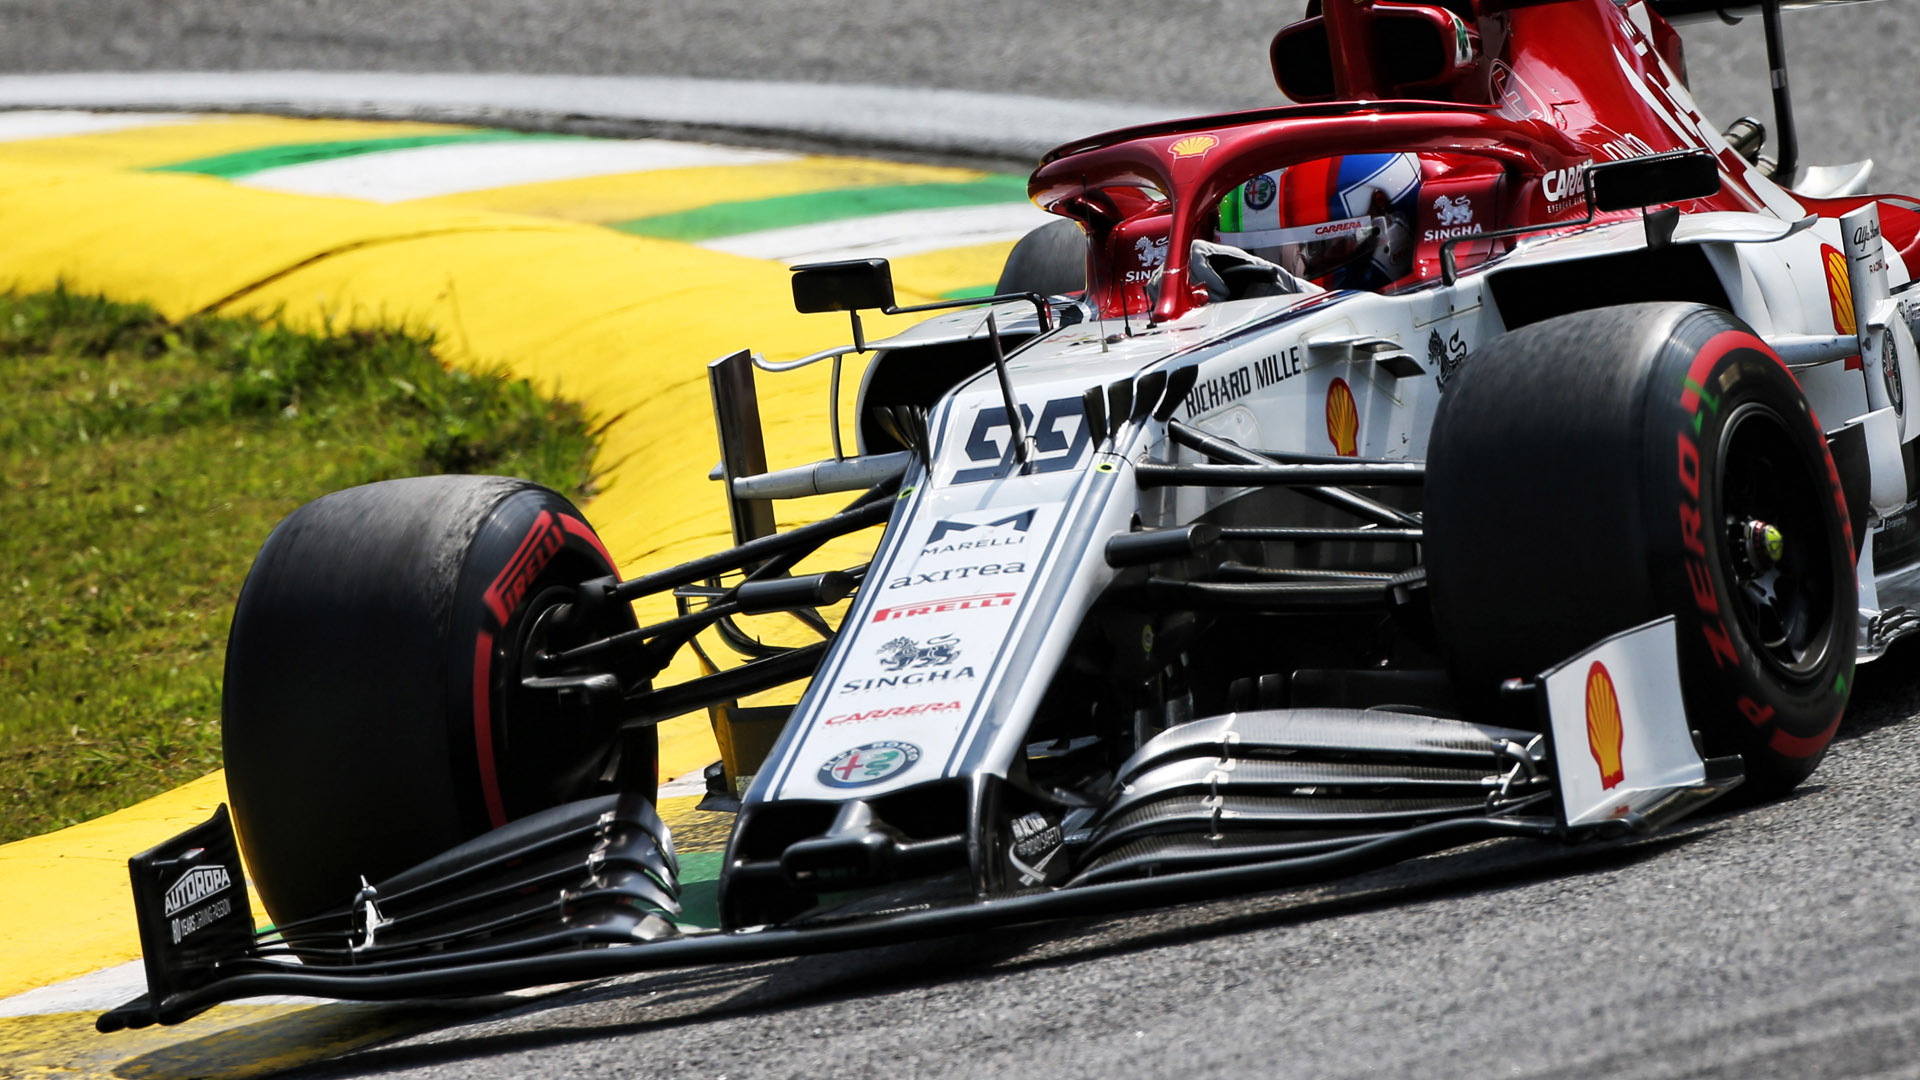 TECH TUESDAY: The wing designs winning out as focus shifts to 2020 - Formula 1